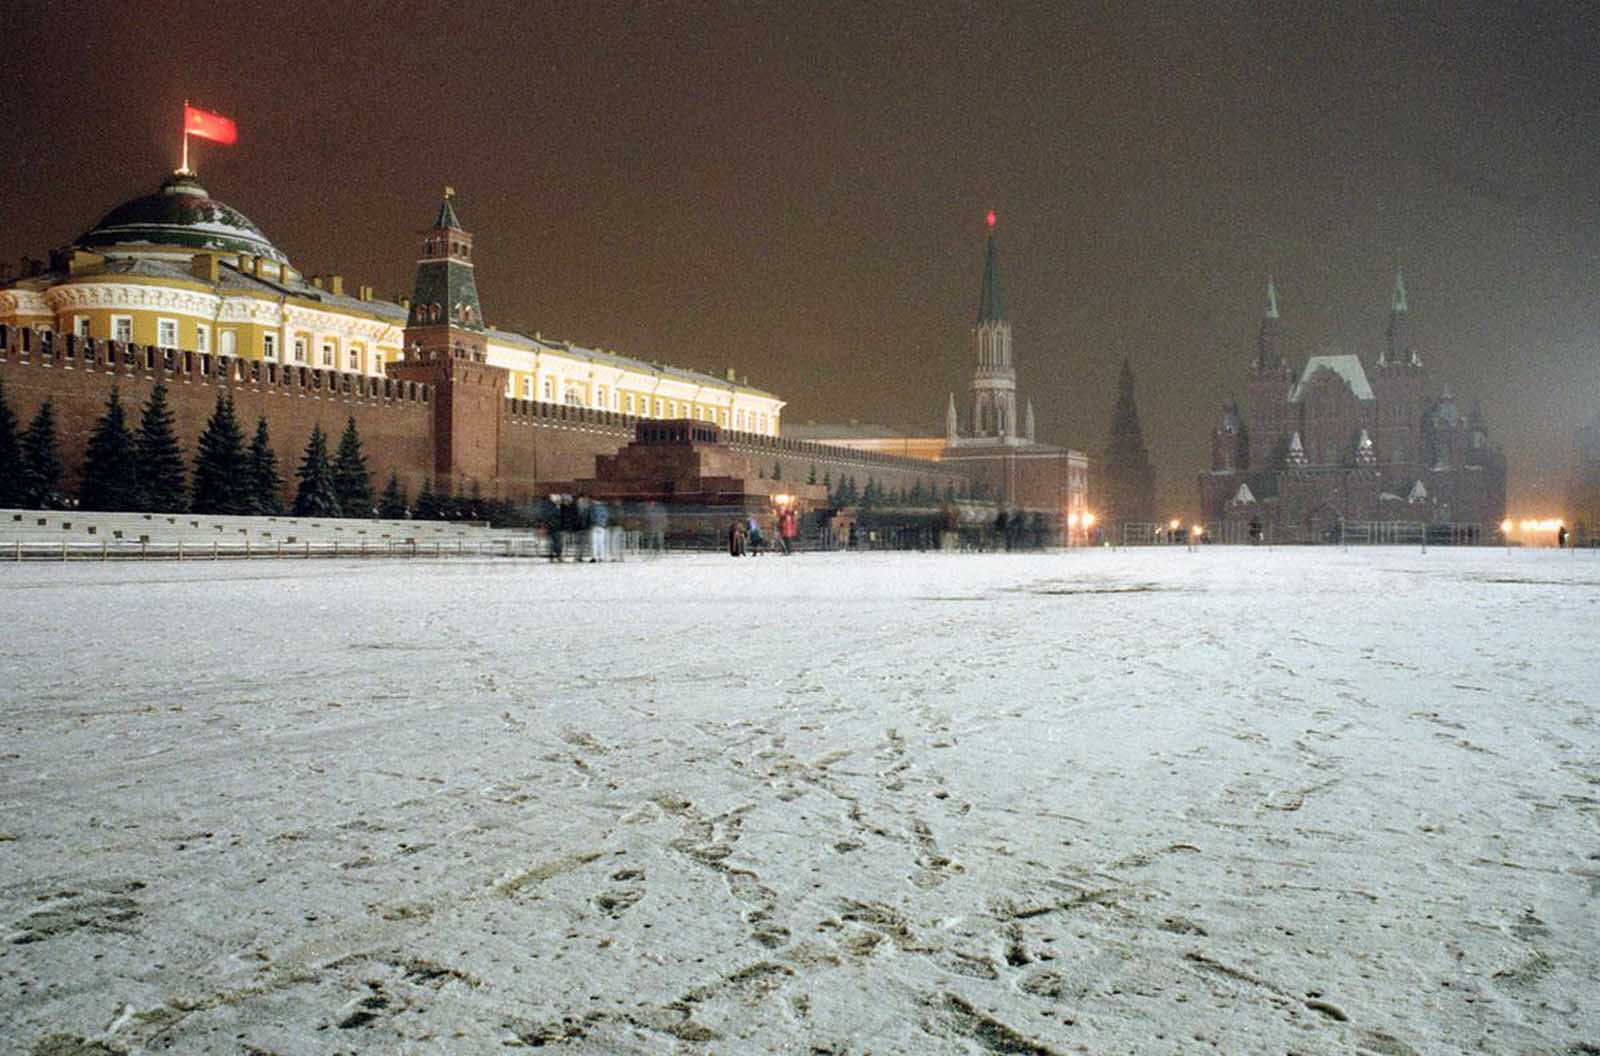 or one of the last times, the Soviet flag flies over the Kremlin at Red Square in Moscow, on Saturday night, December 21, 1991. The flag was replaced by the Russian flag on New Year's.